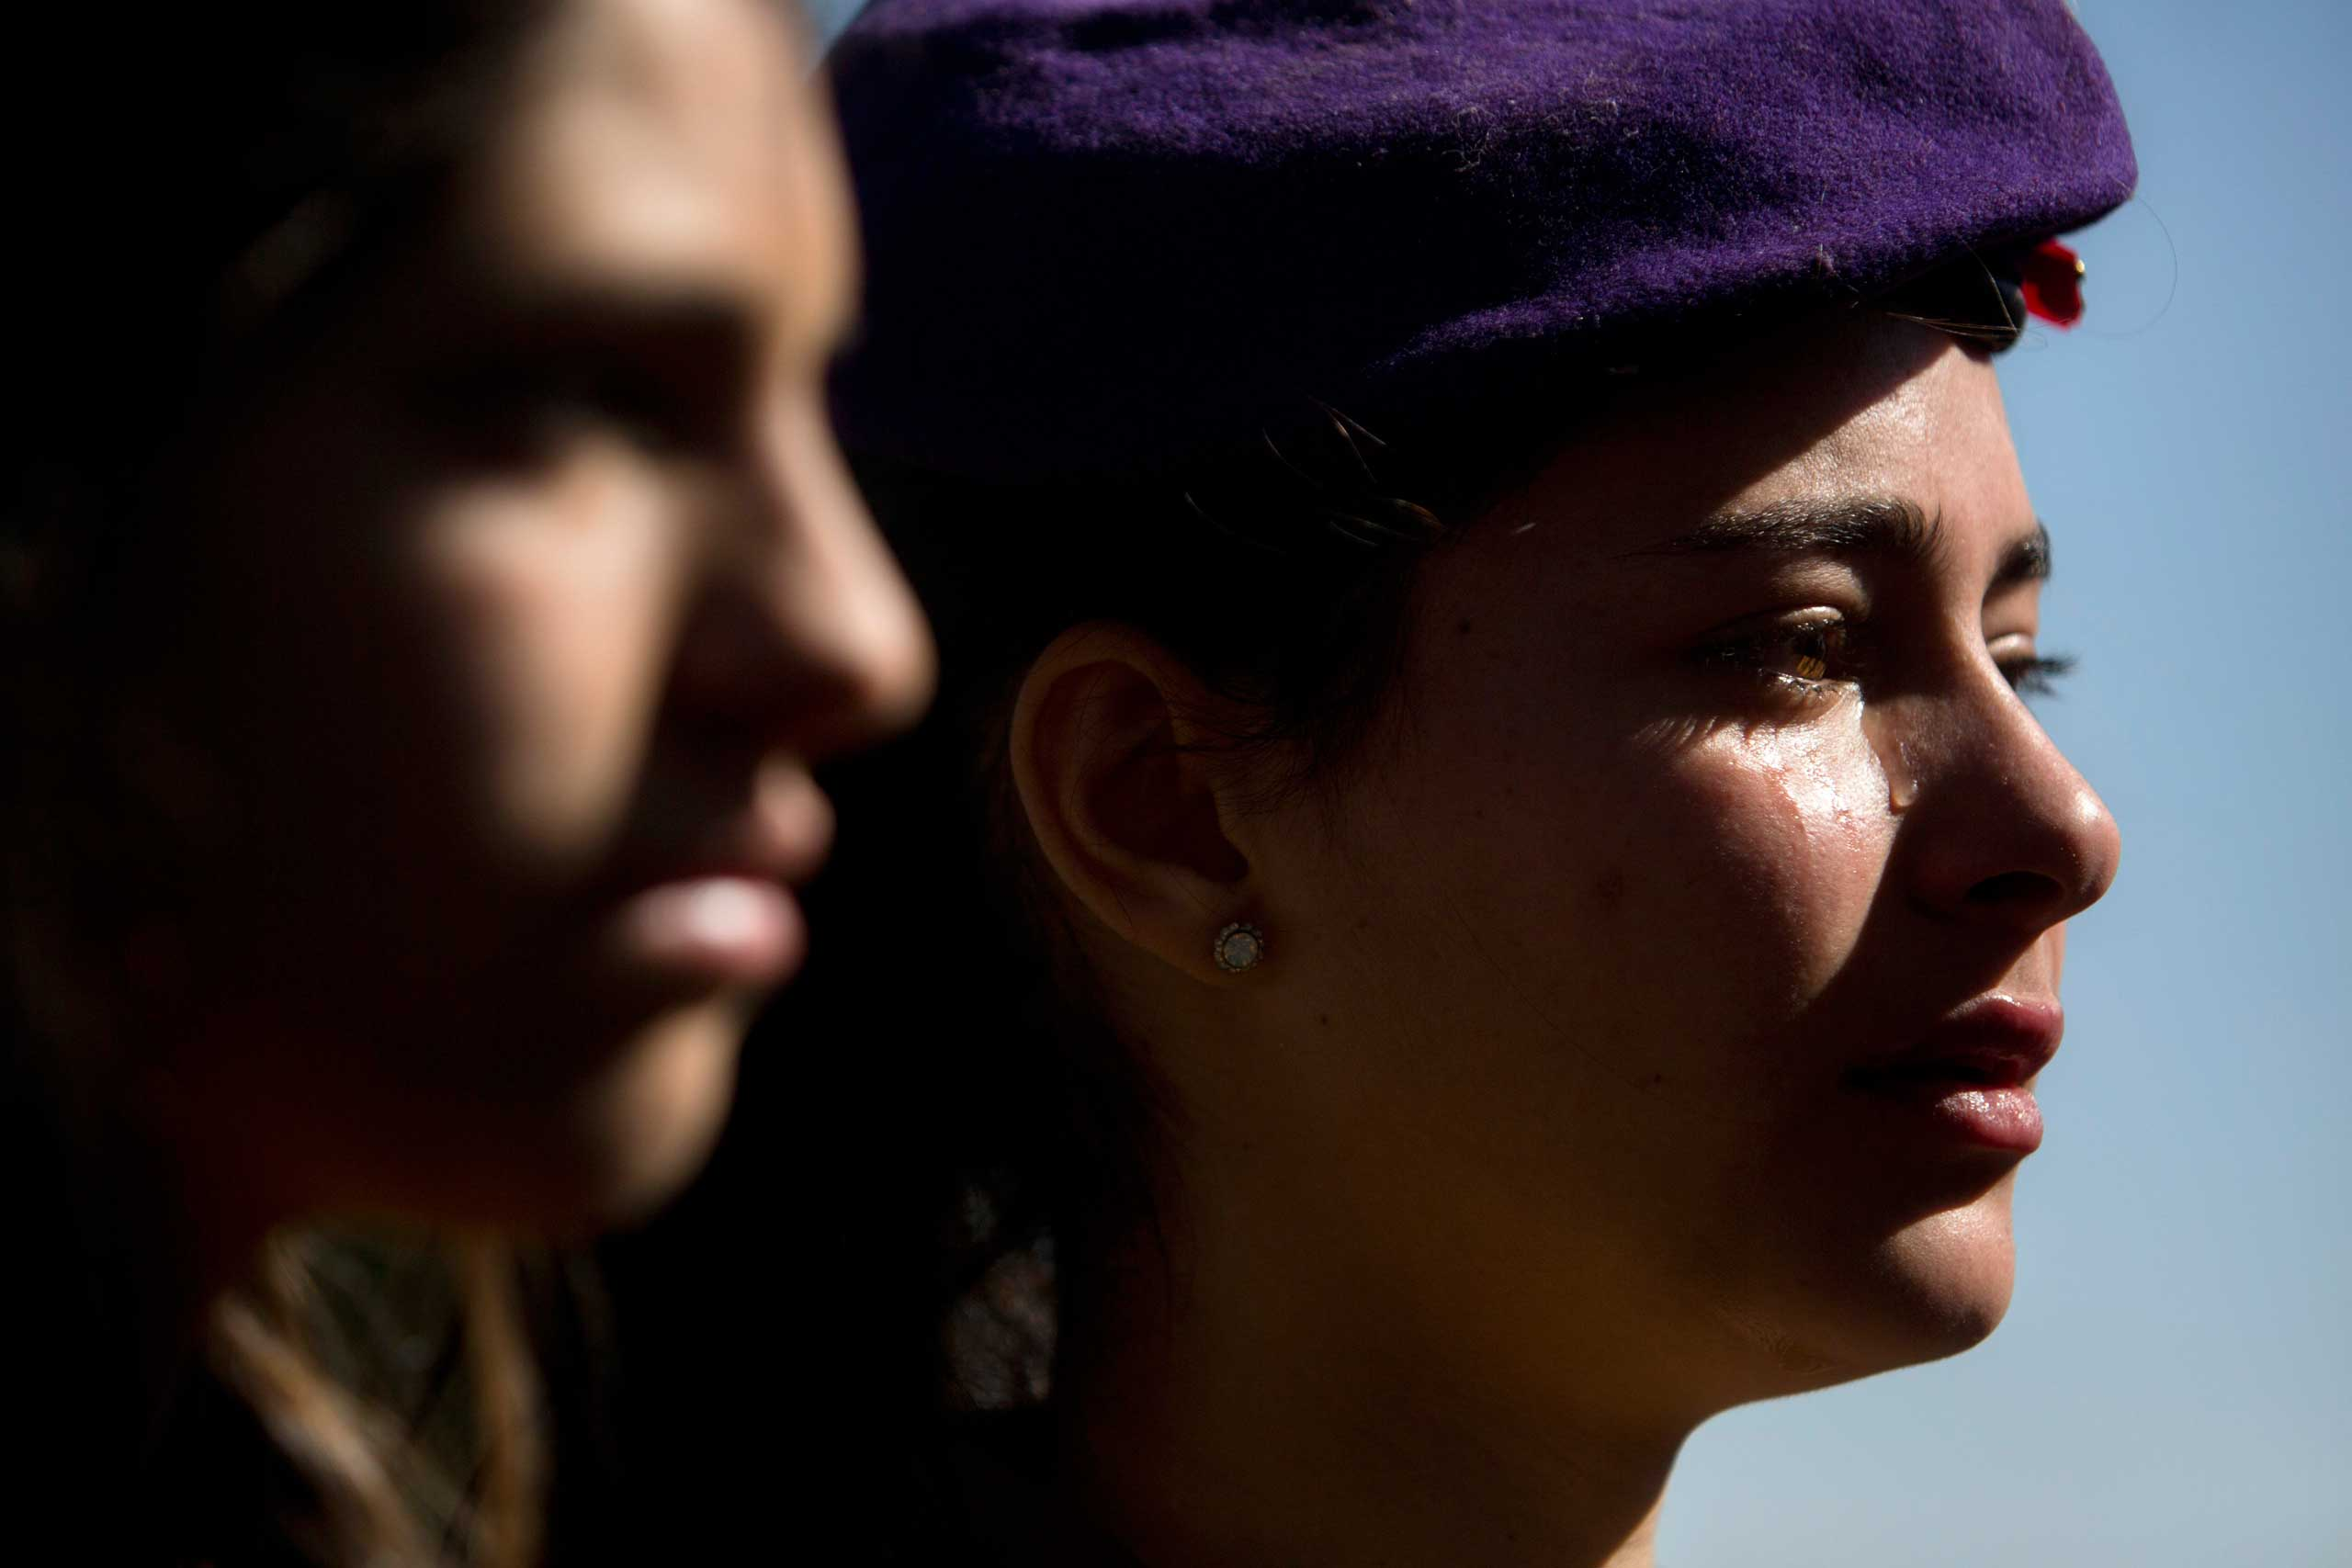 Jan. 29, 2015. Israeli soldiers cry during the funeral of Major Yochai Kalangel in Jerusalem. Israeli Prime Minister Benjamin Netanyahu blamed Iran for a deadly flare-up along the Israeli-Lebanese border, the deadliest escalation in the disputed zone since the 2006 war between Hezbollah and Israel.